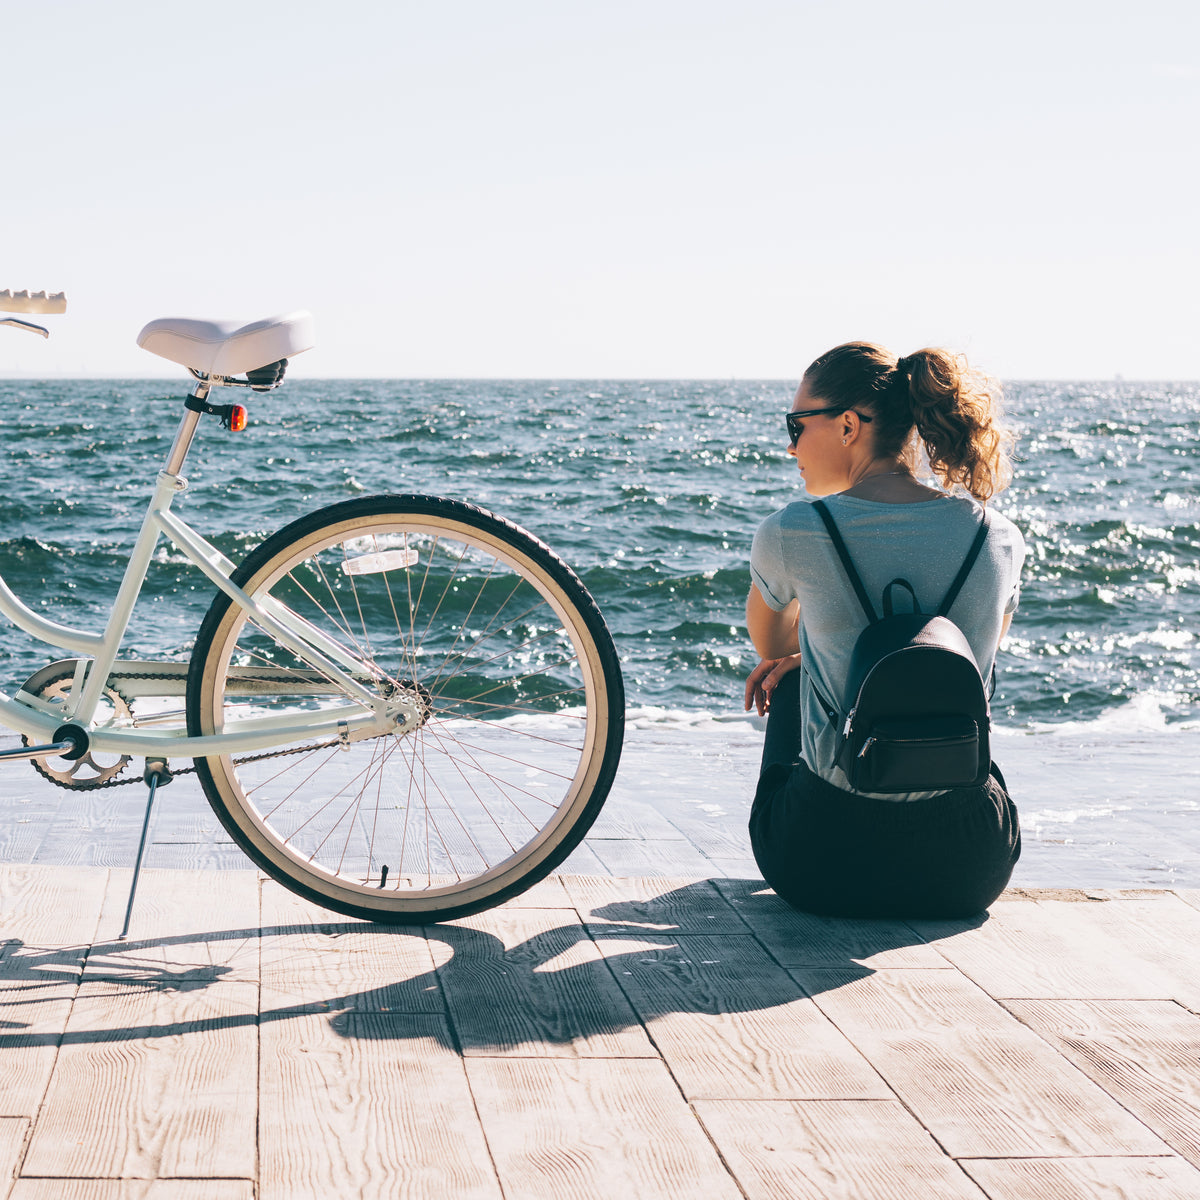 Buying Guide: 10 Must-Have Beach Cruiser Accessories